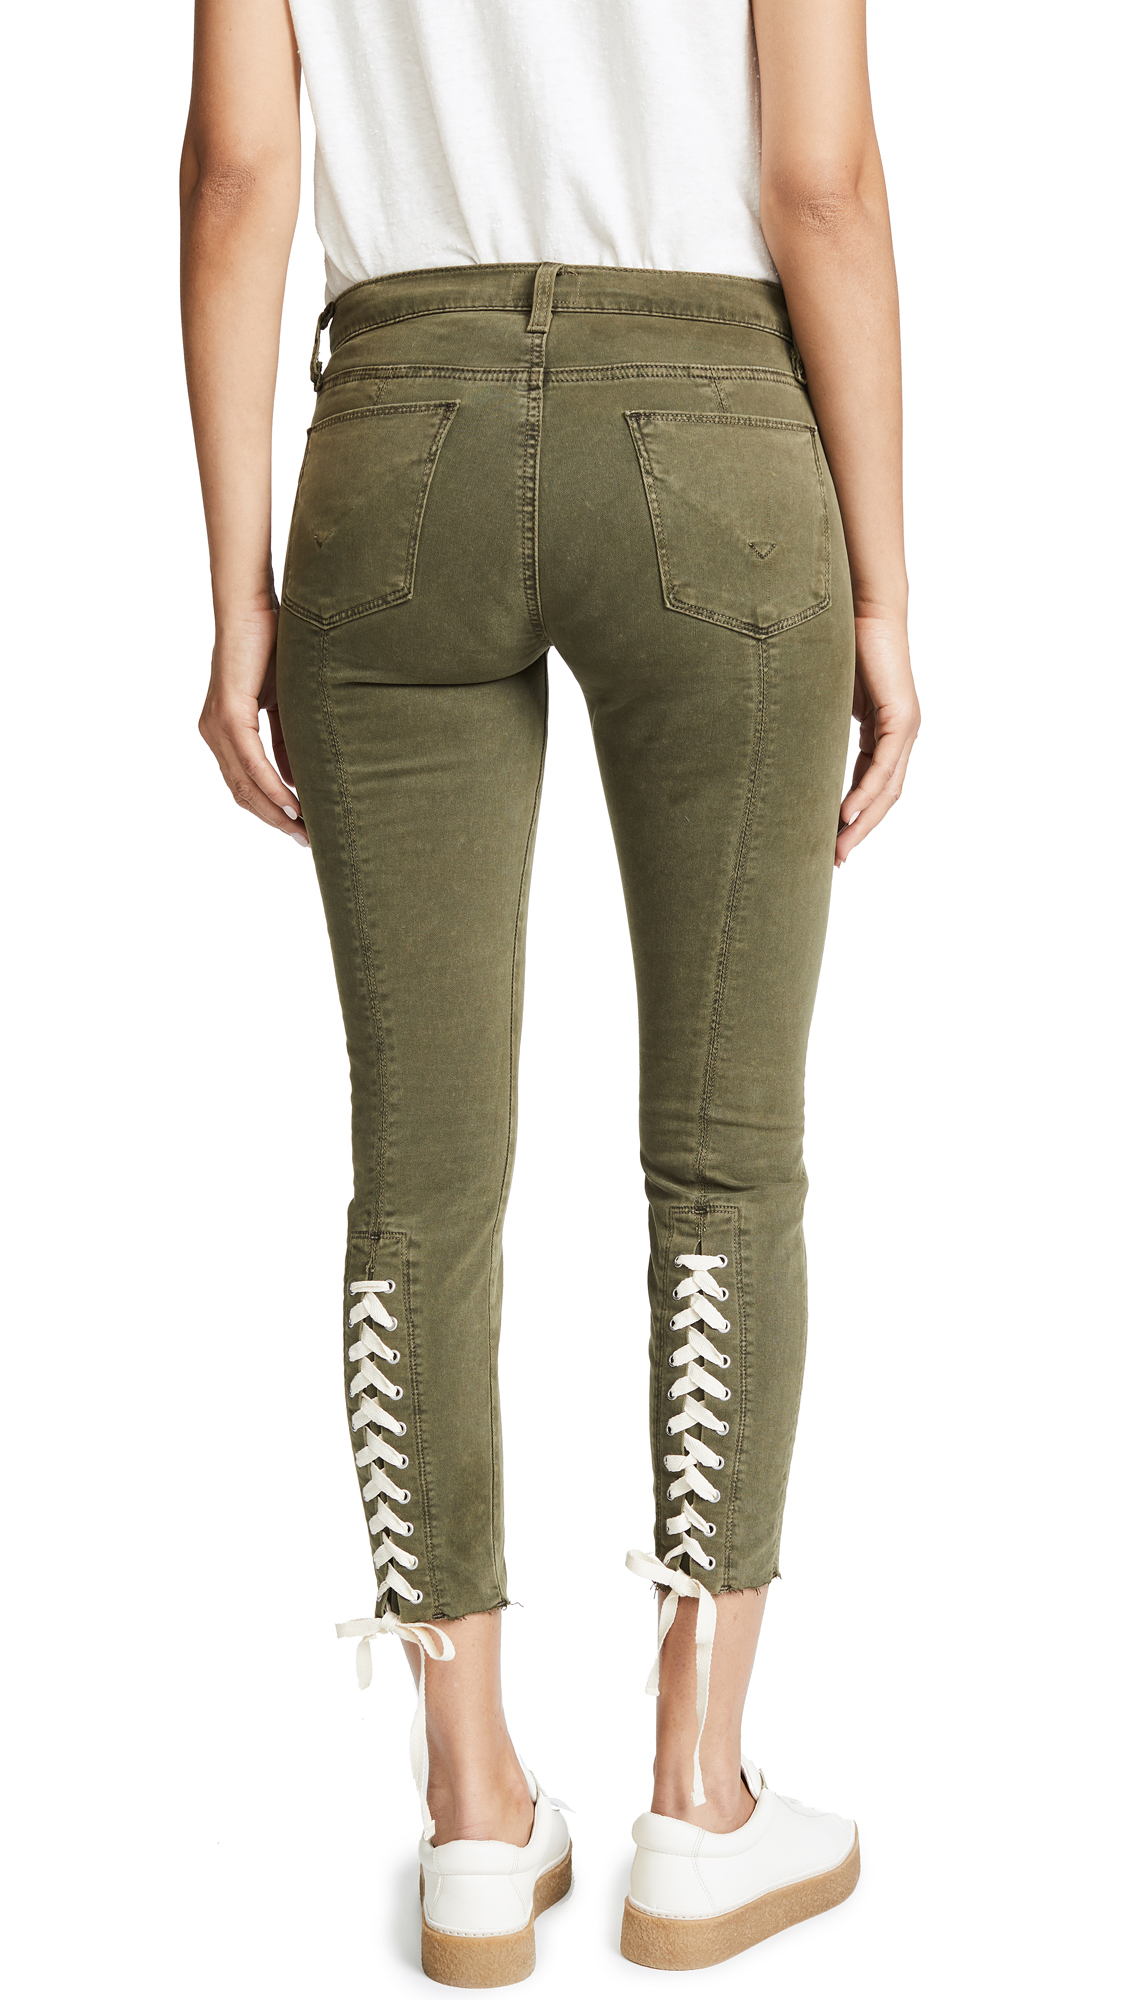 Hudson Nico Lace Up Skinny Pants In Crushed Olive